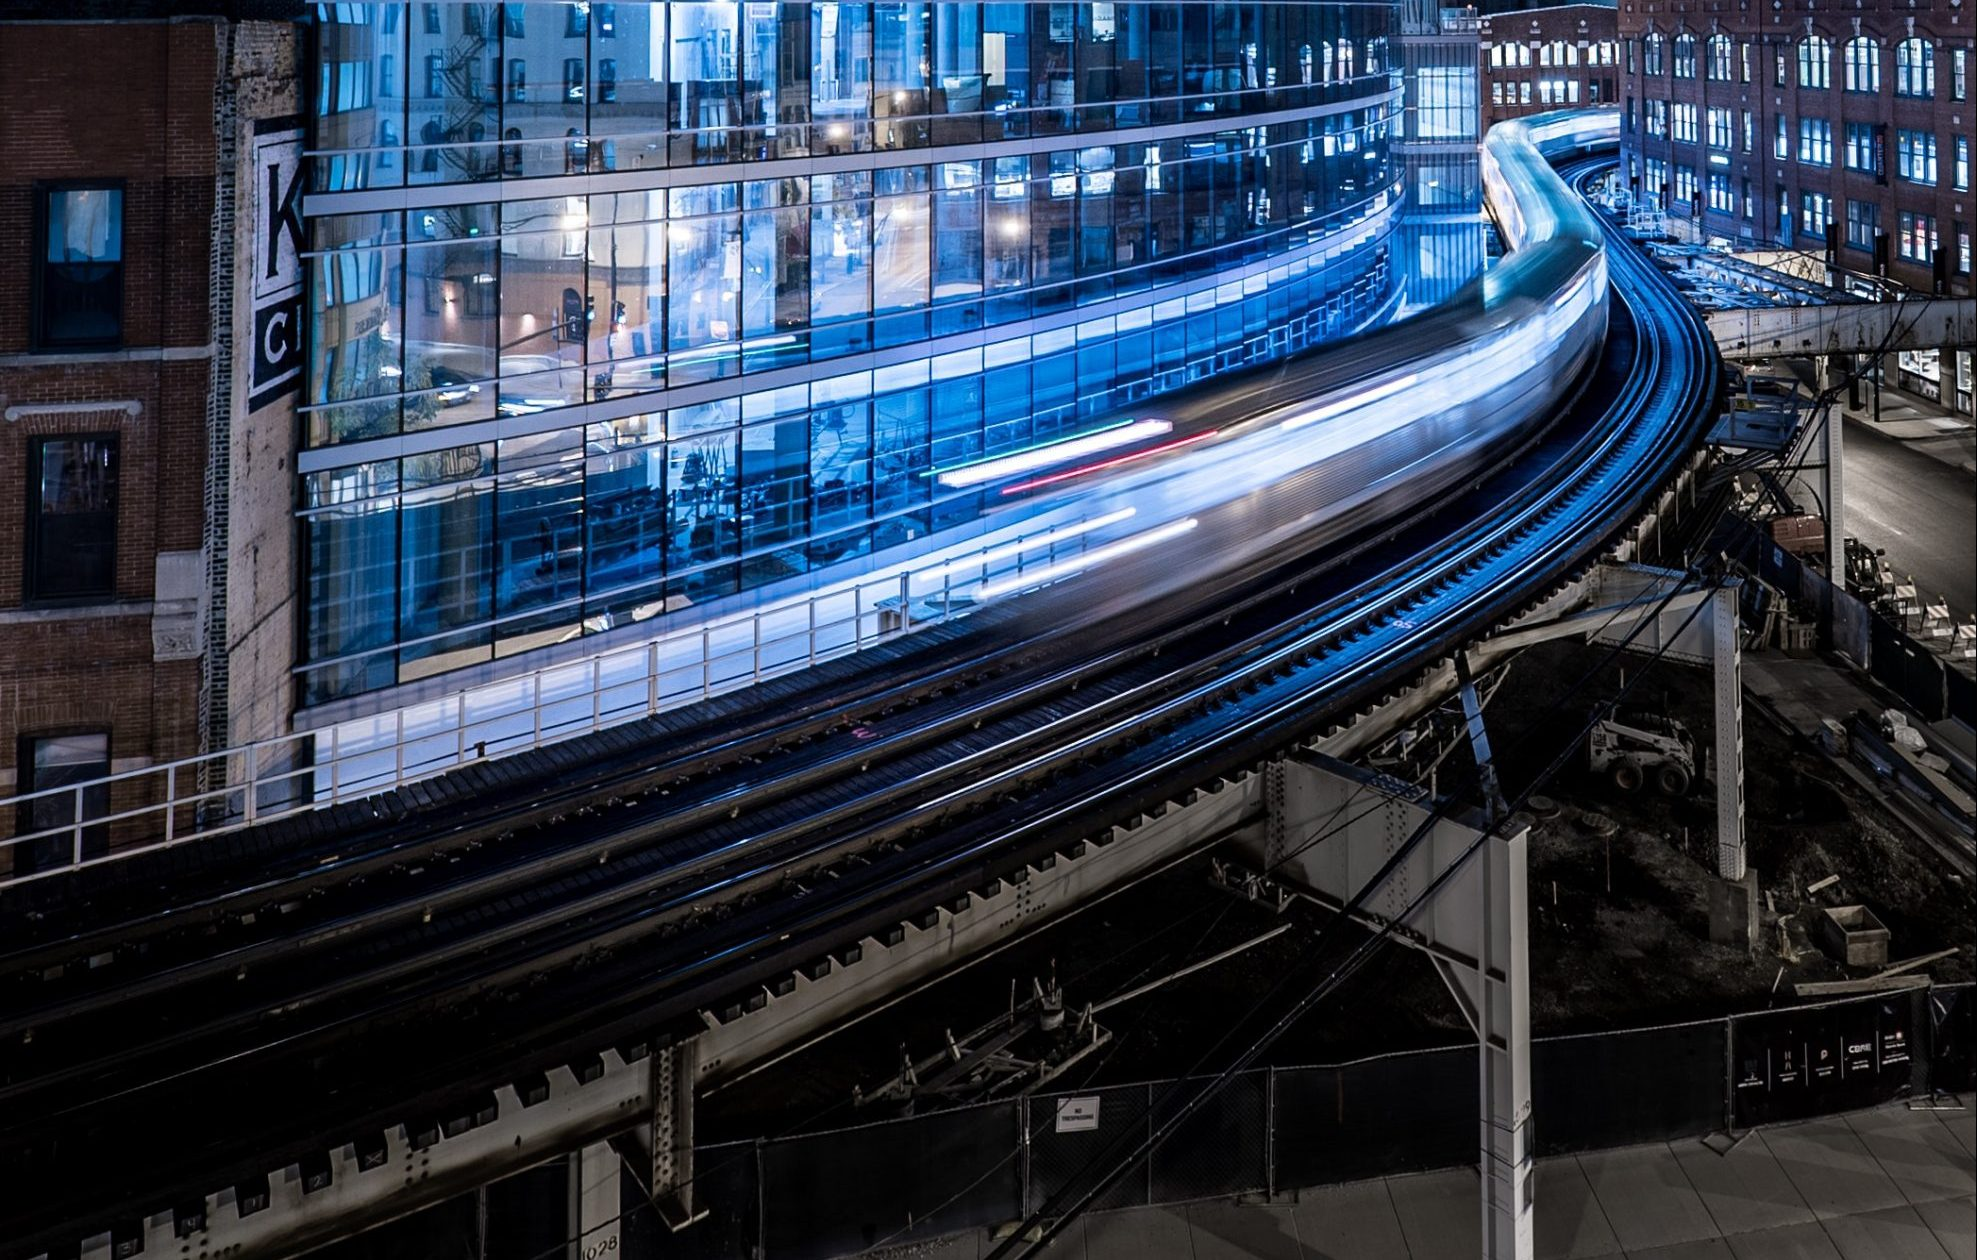 architecture big city building with motion blur train on tracks